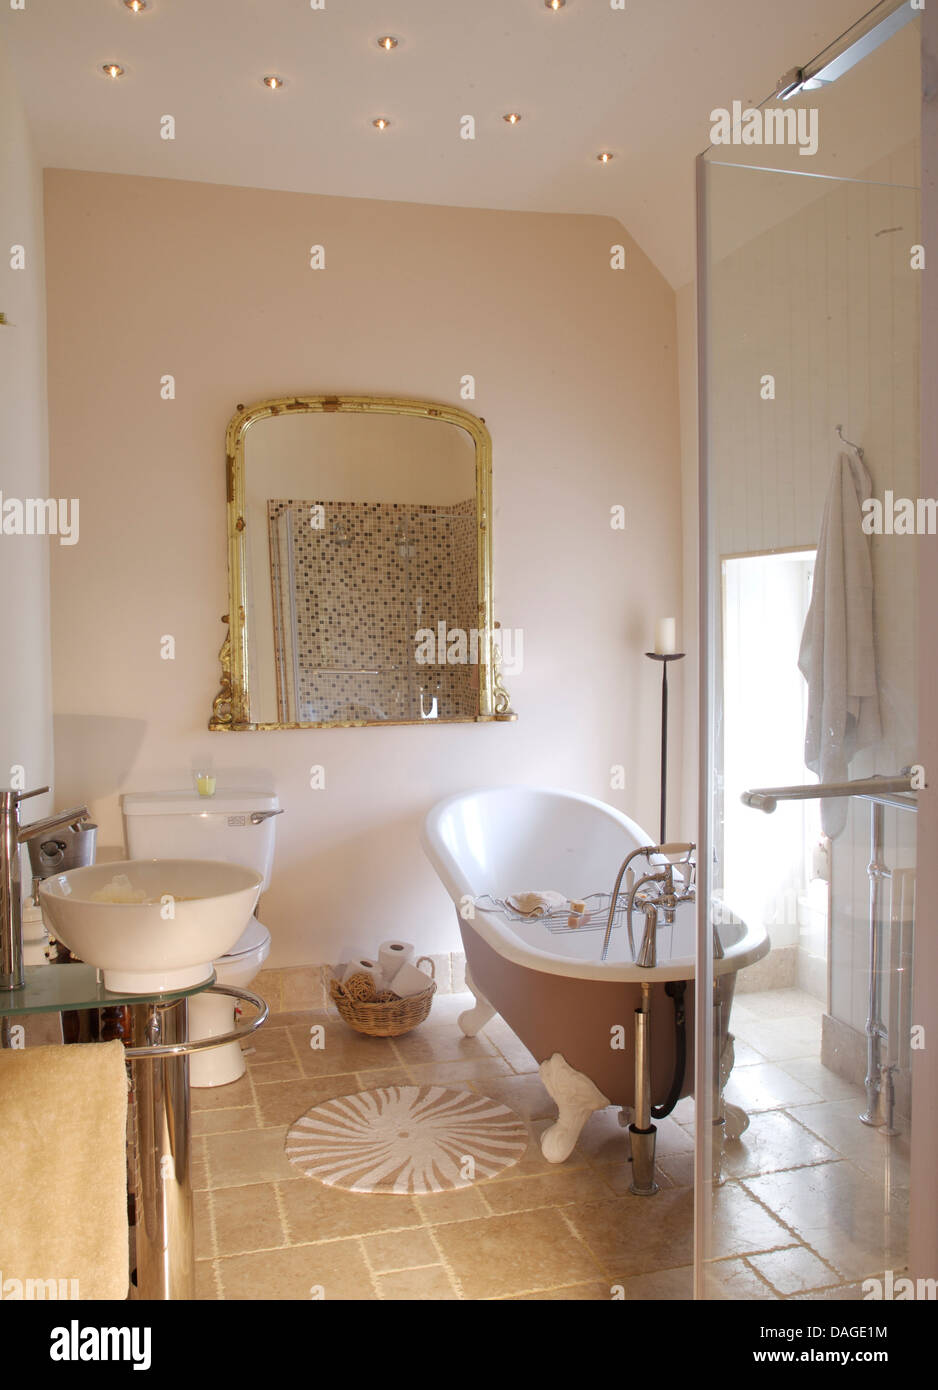 Roll Top Bath And Large Glass Shower Cabinet In Modern Bathroom With Large  Antique Mirror And Stone Tiled Floor